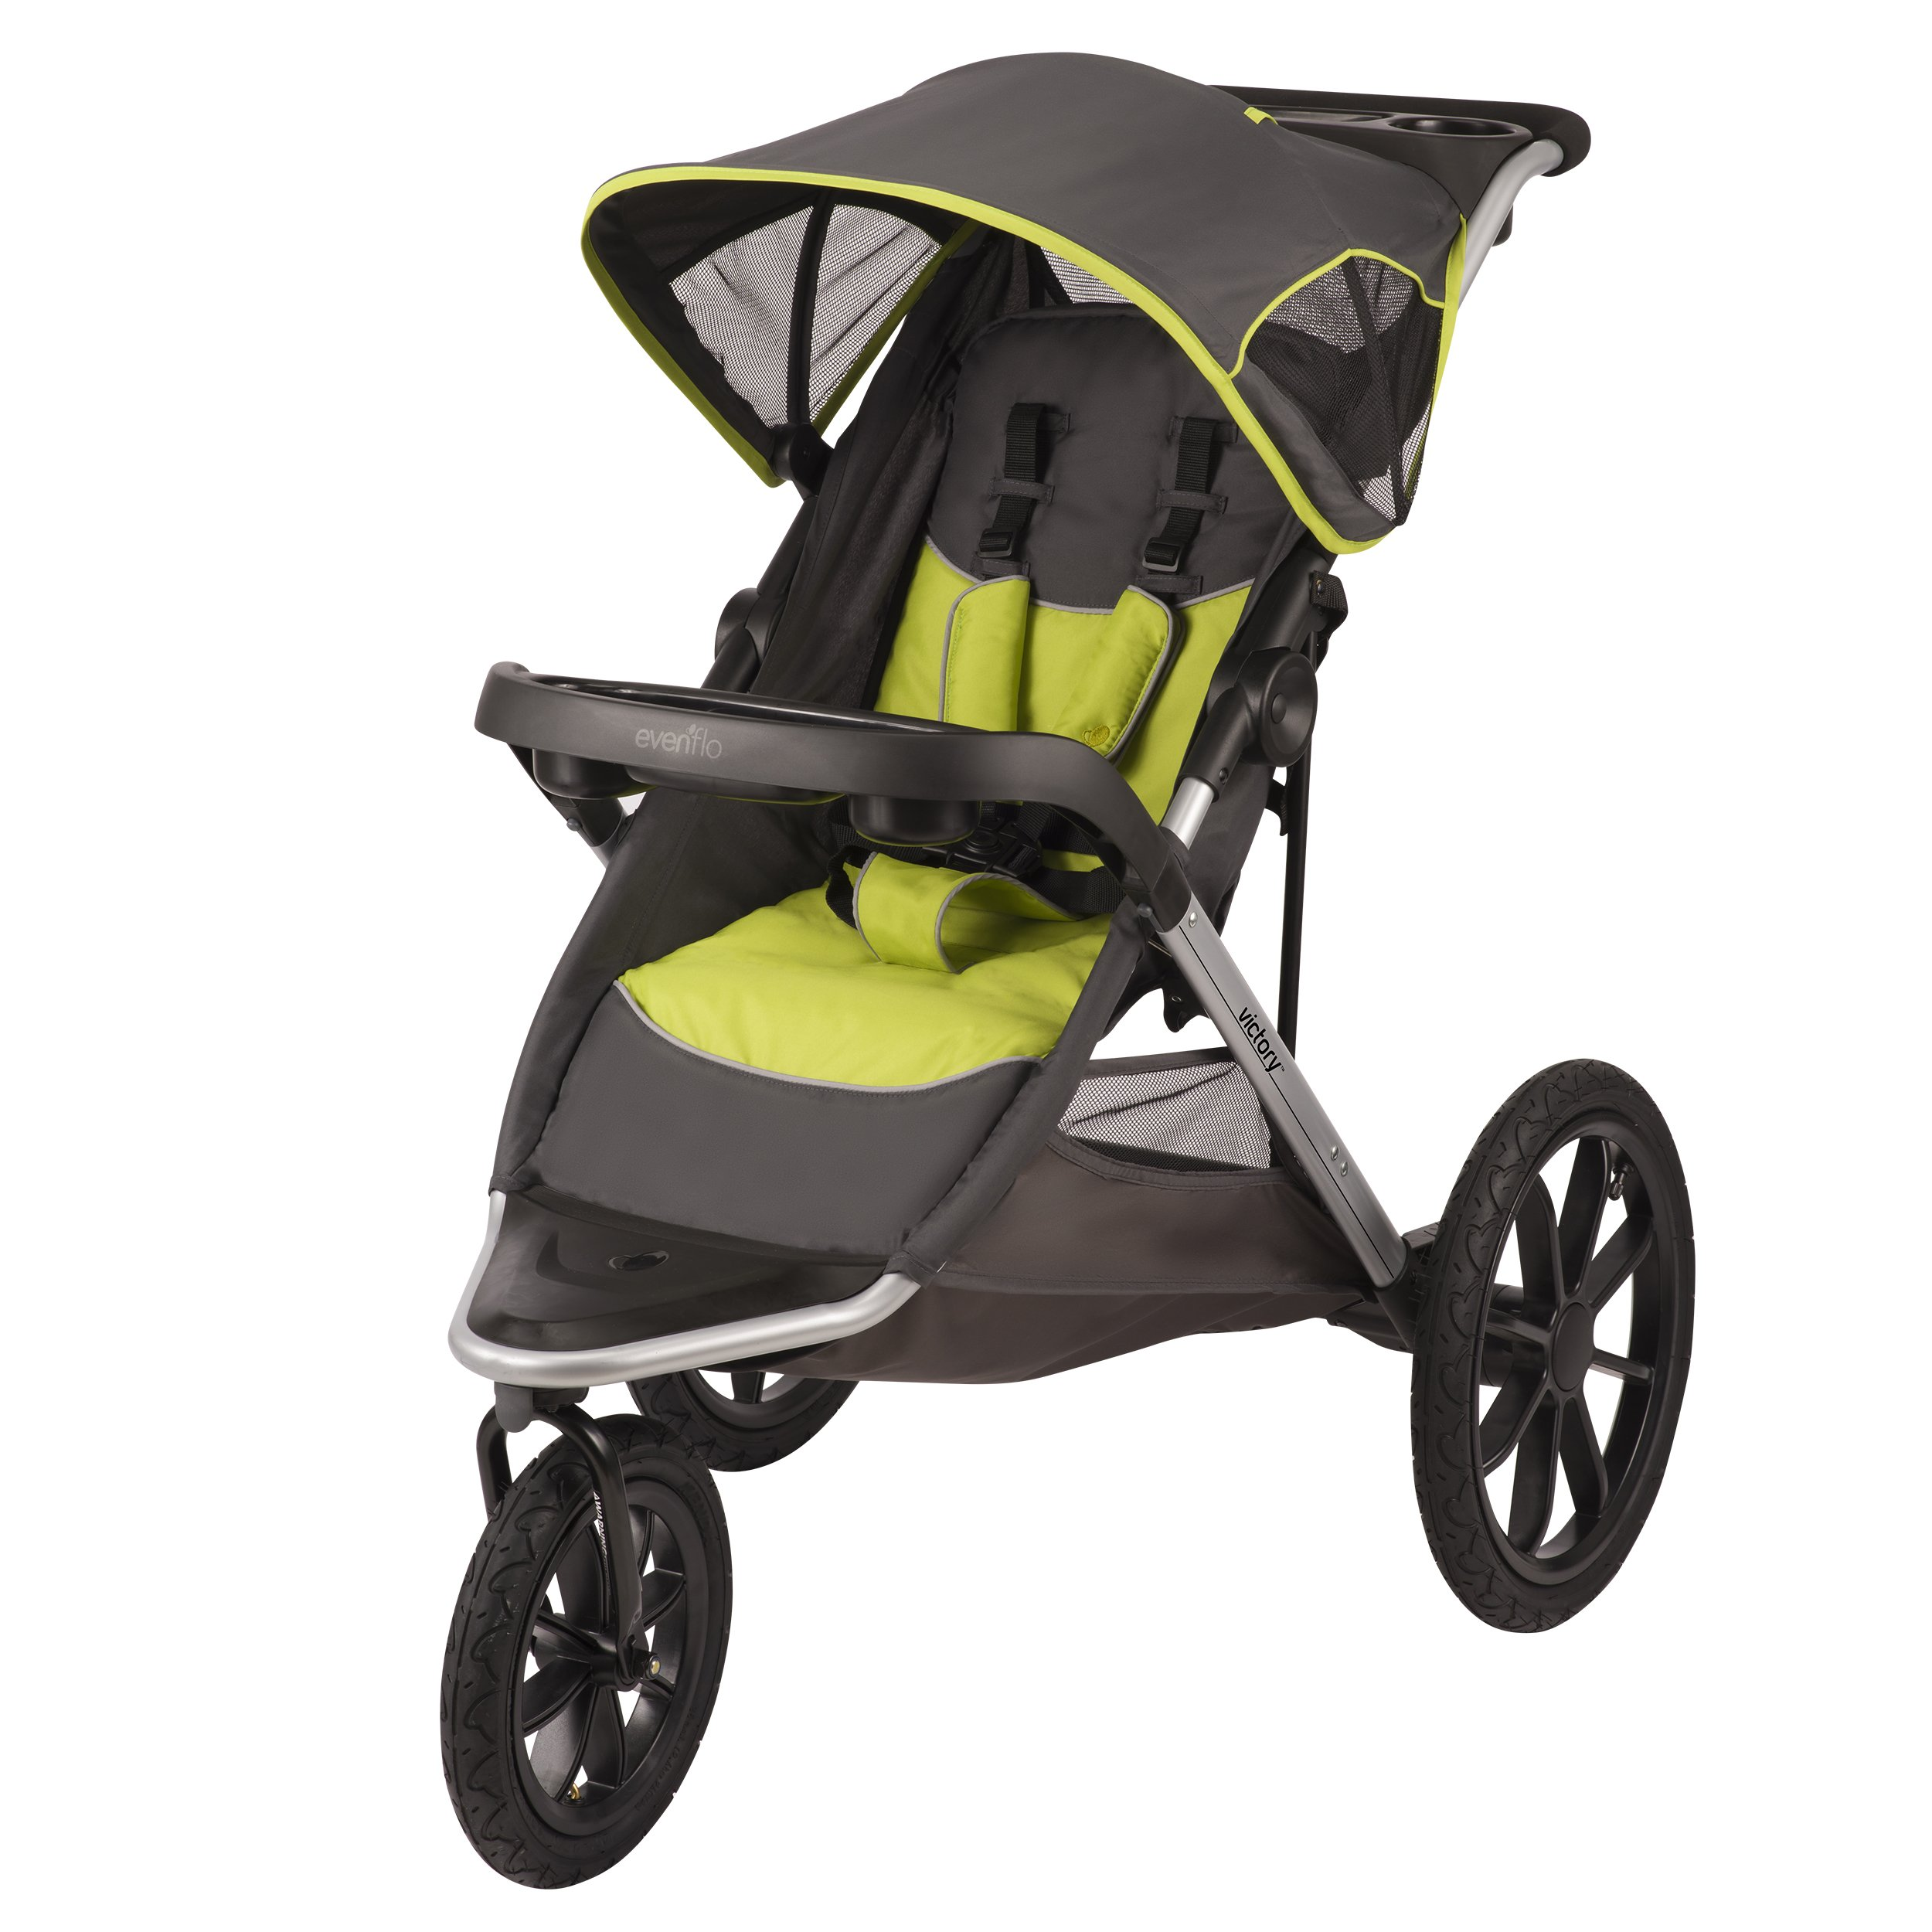 Image of the Evenflo Victory Jogging Stroller Tucson, Tucson